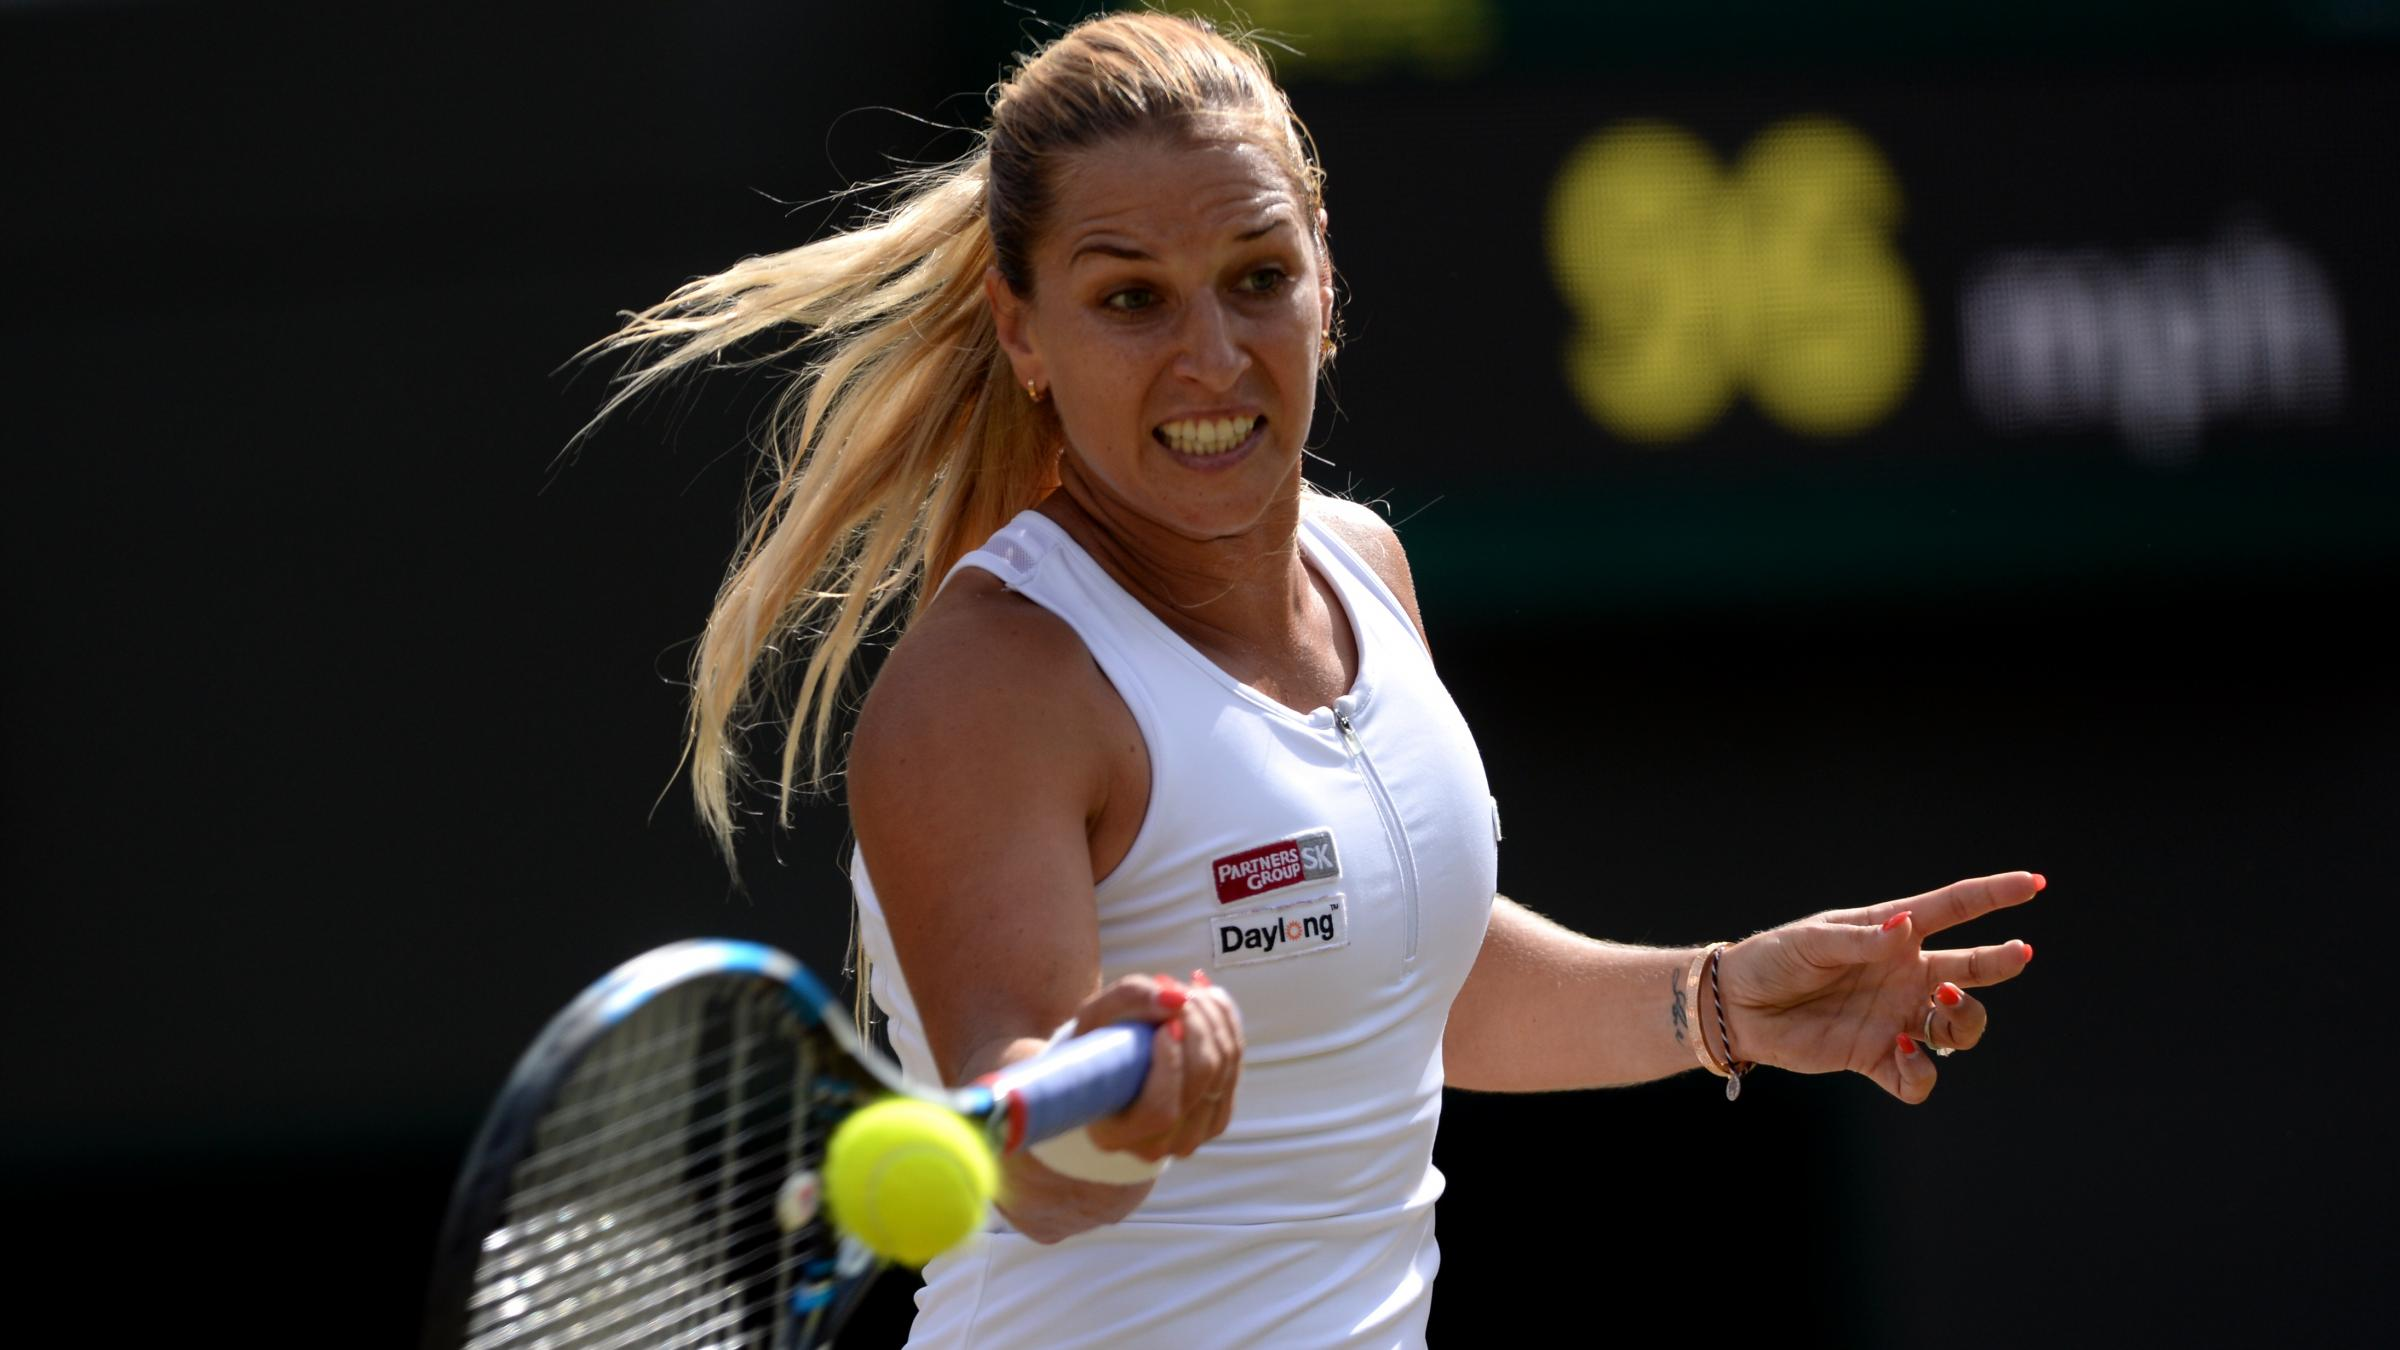 Dominika Cibulkova Crashes Out Of Ricoh Open In First Round